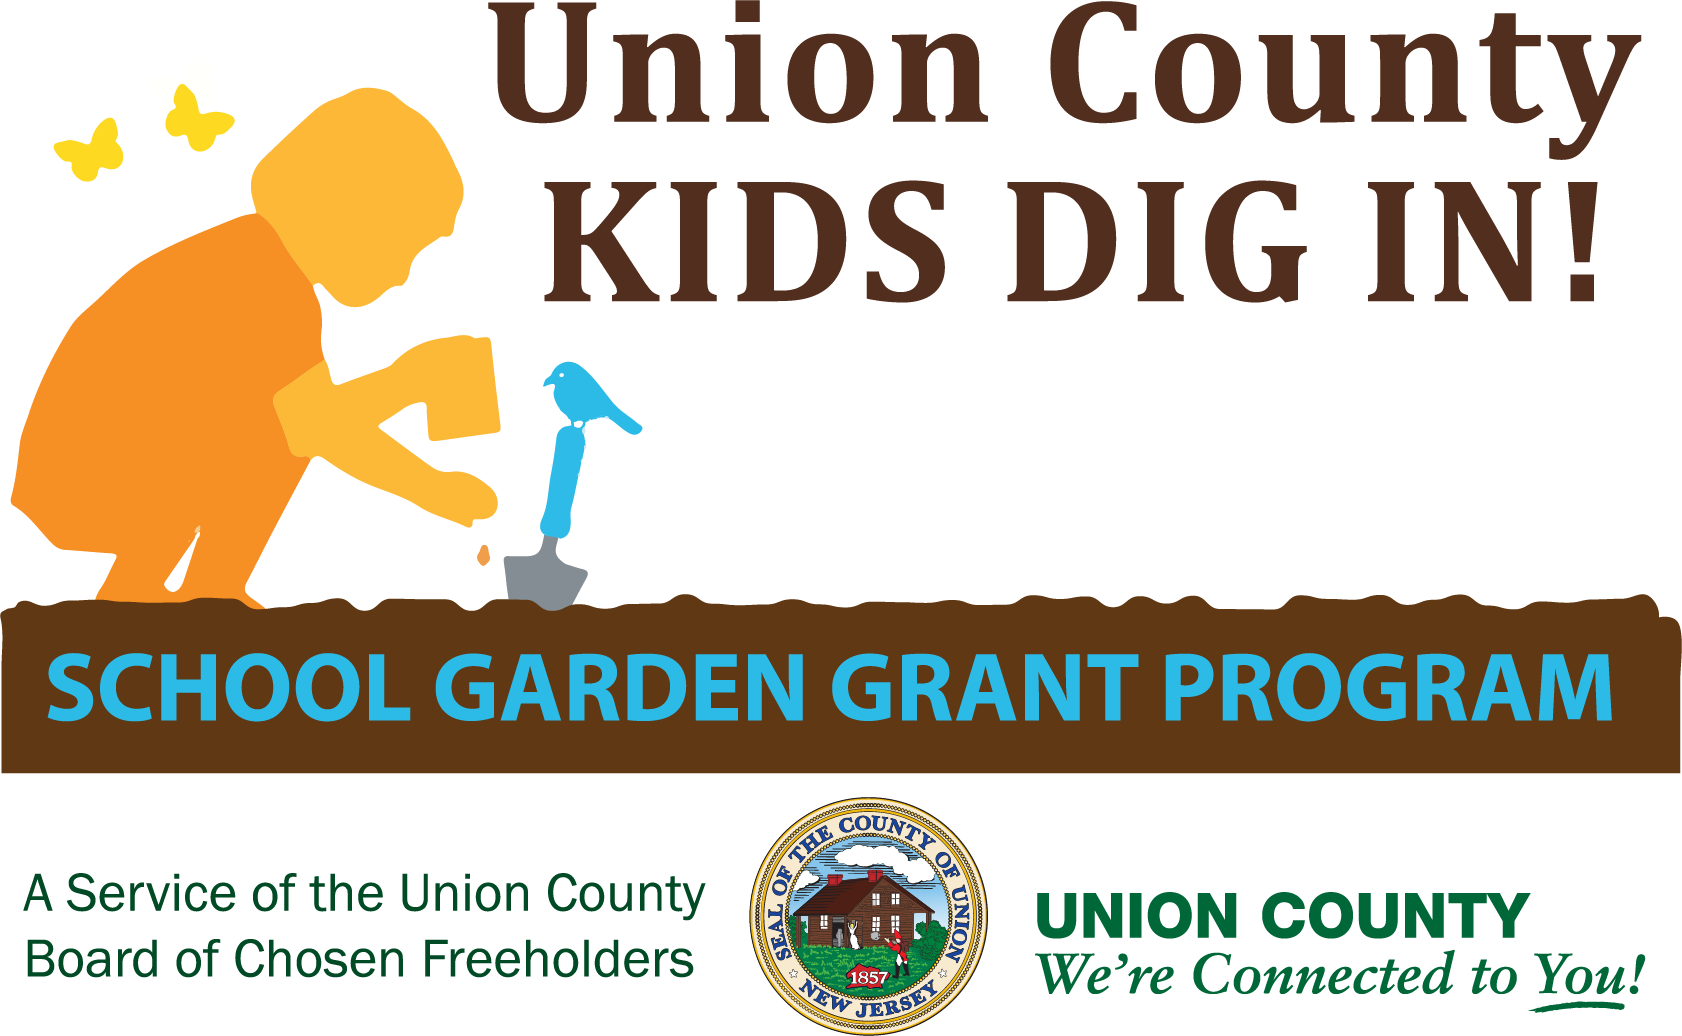 """Union County Kids Dig In!"" Initiative at Battin School #4"